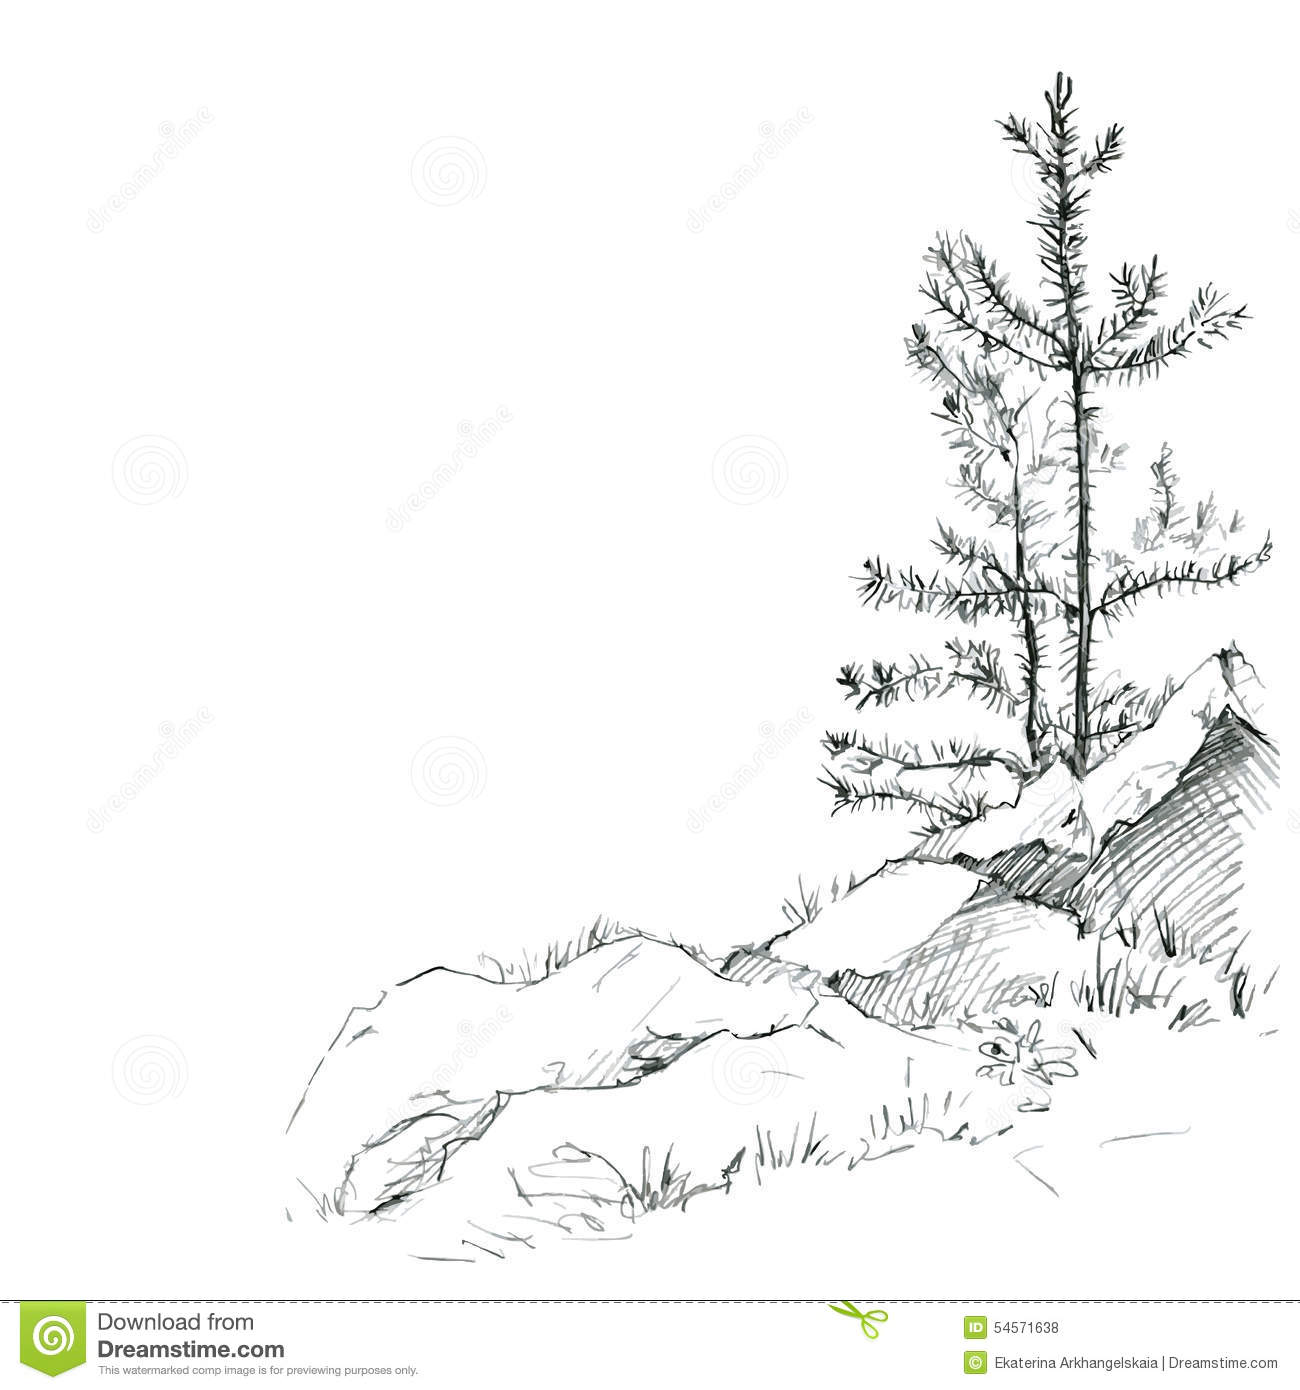 ... pencil, sketch of wild nature, forest sketch, hand drawn vector